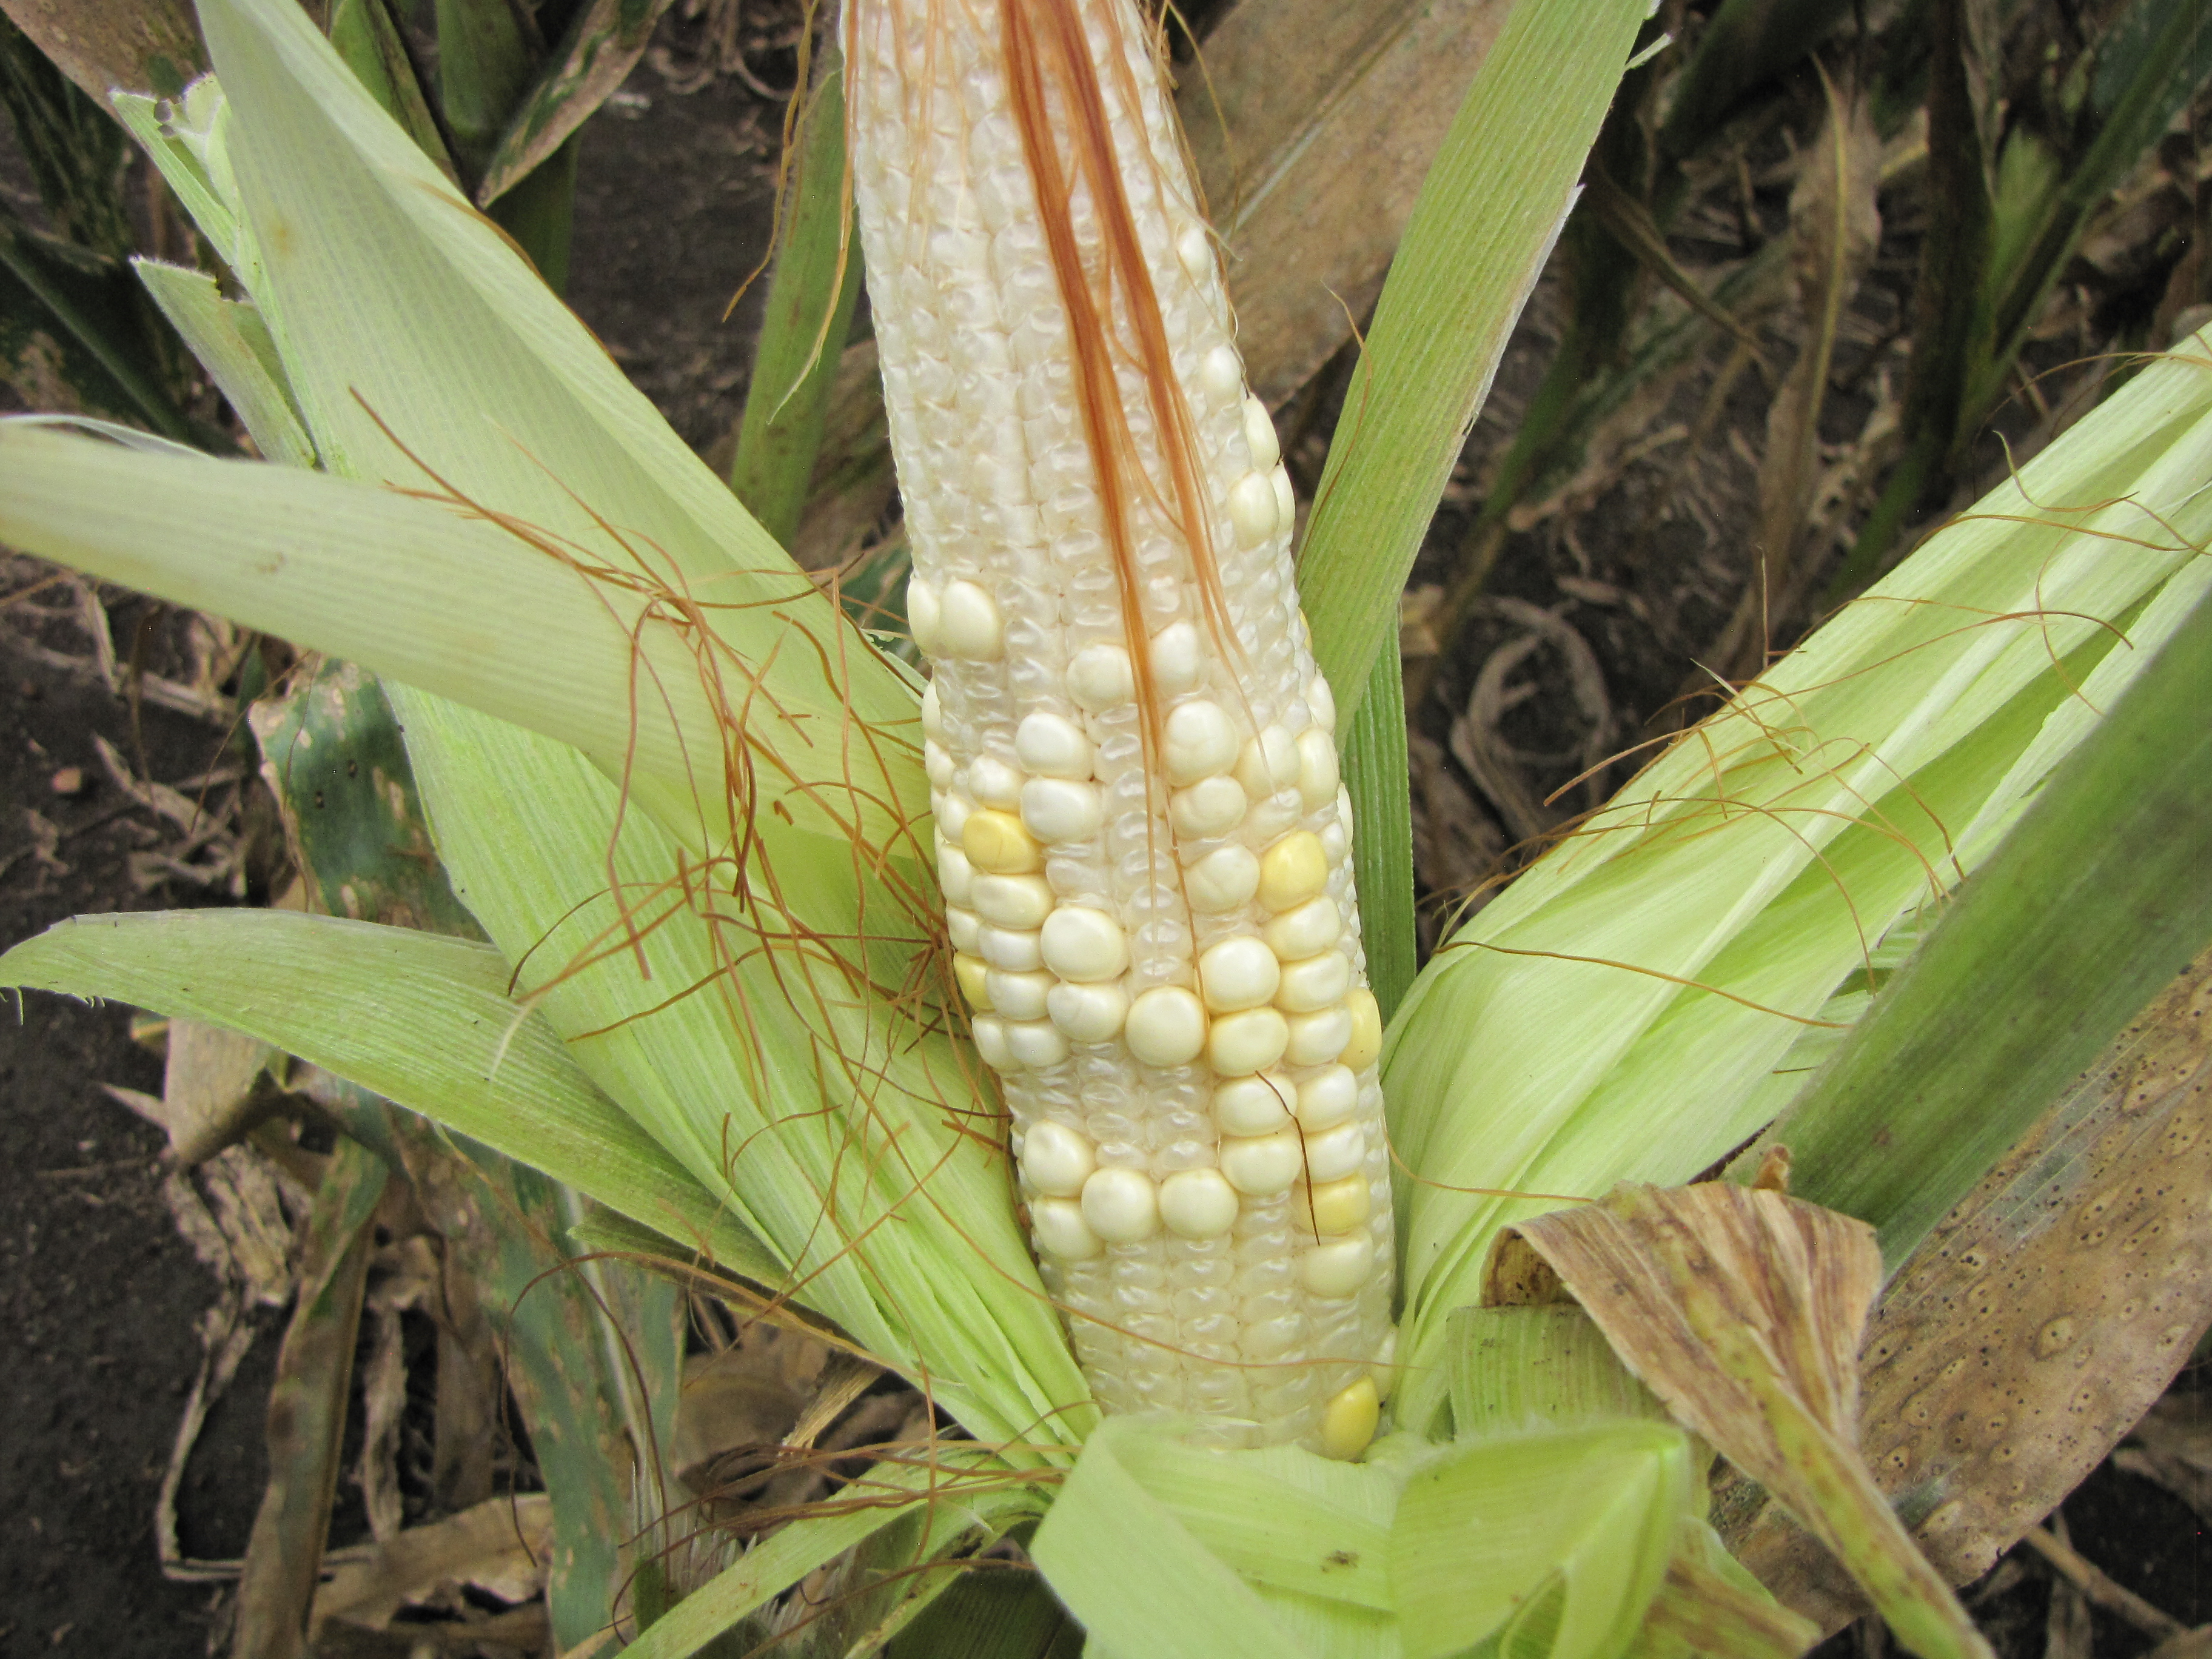 A maize ear with shriveled kernels that are poorly filled, a major side effect of TSC that reduces farmer's tields.